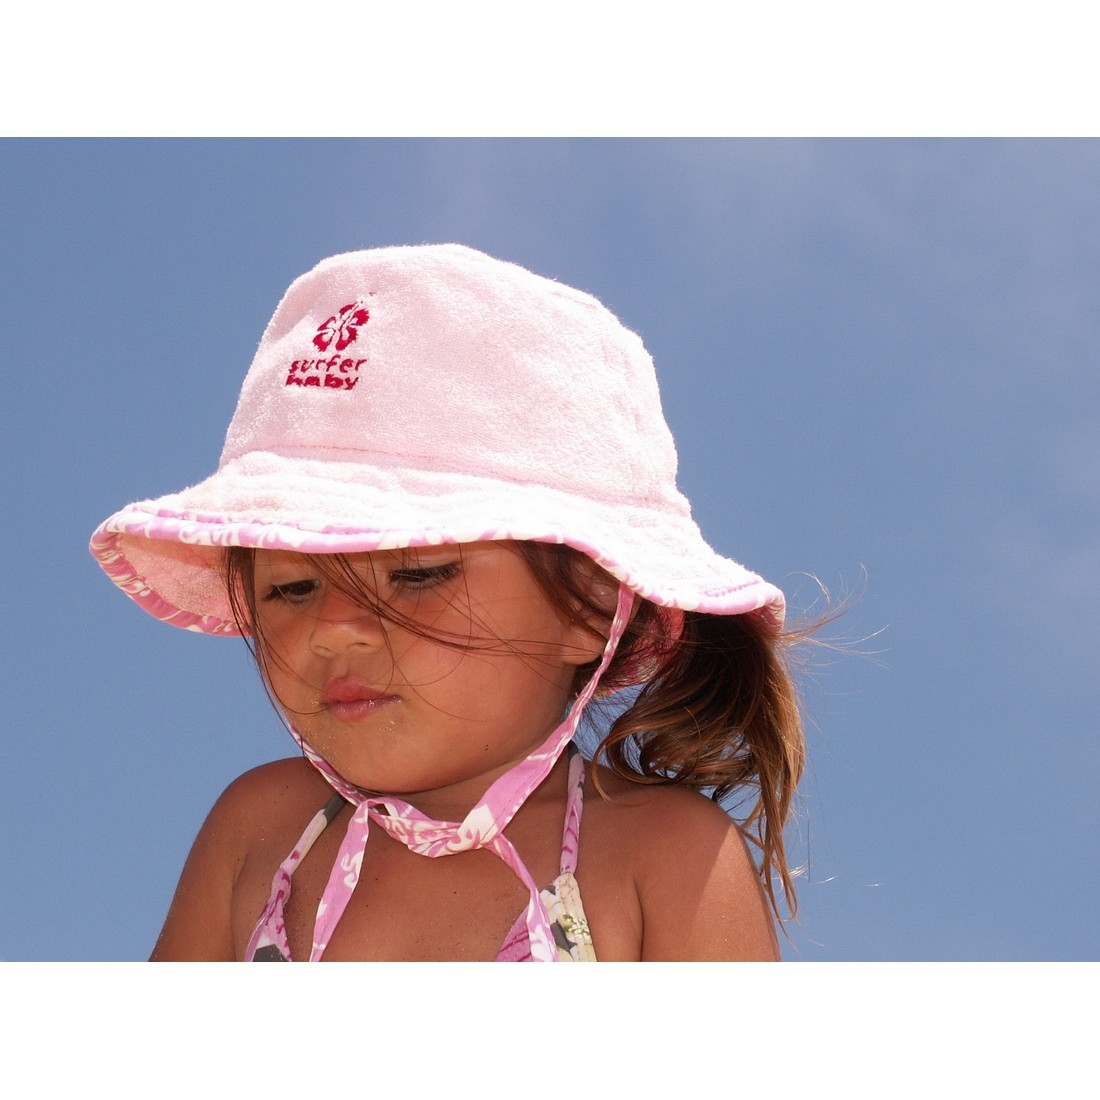 906bc18ccef Surfer Baby Cotton Terry Floppy Sun Hat